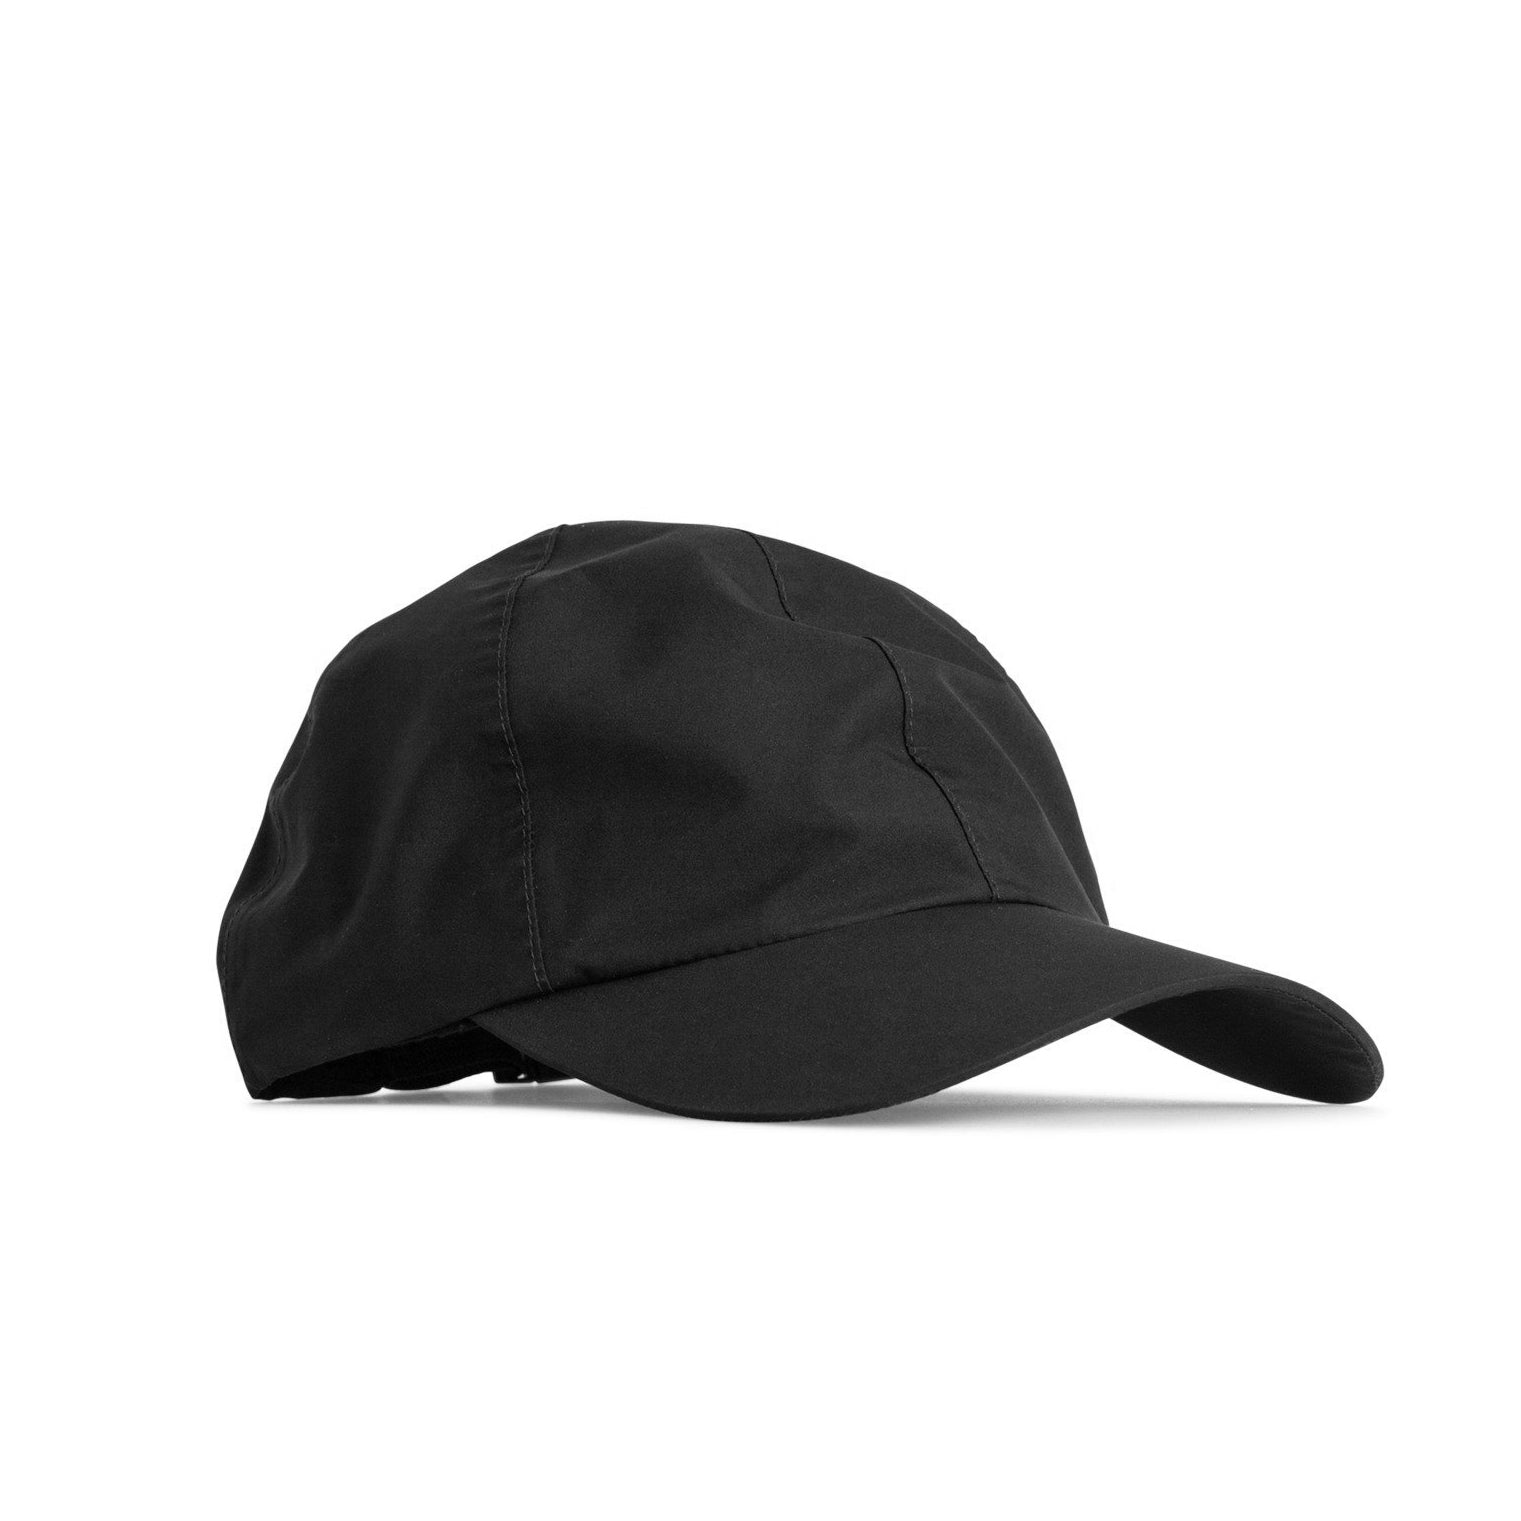 GORE-TEX Sports Cap - Black